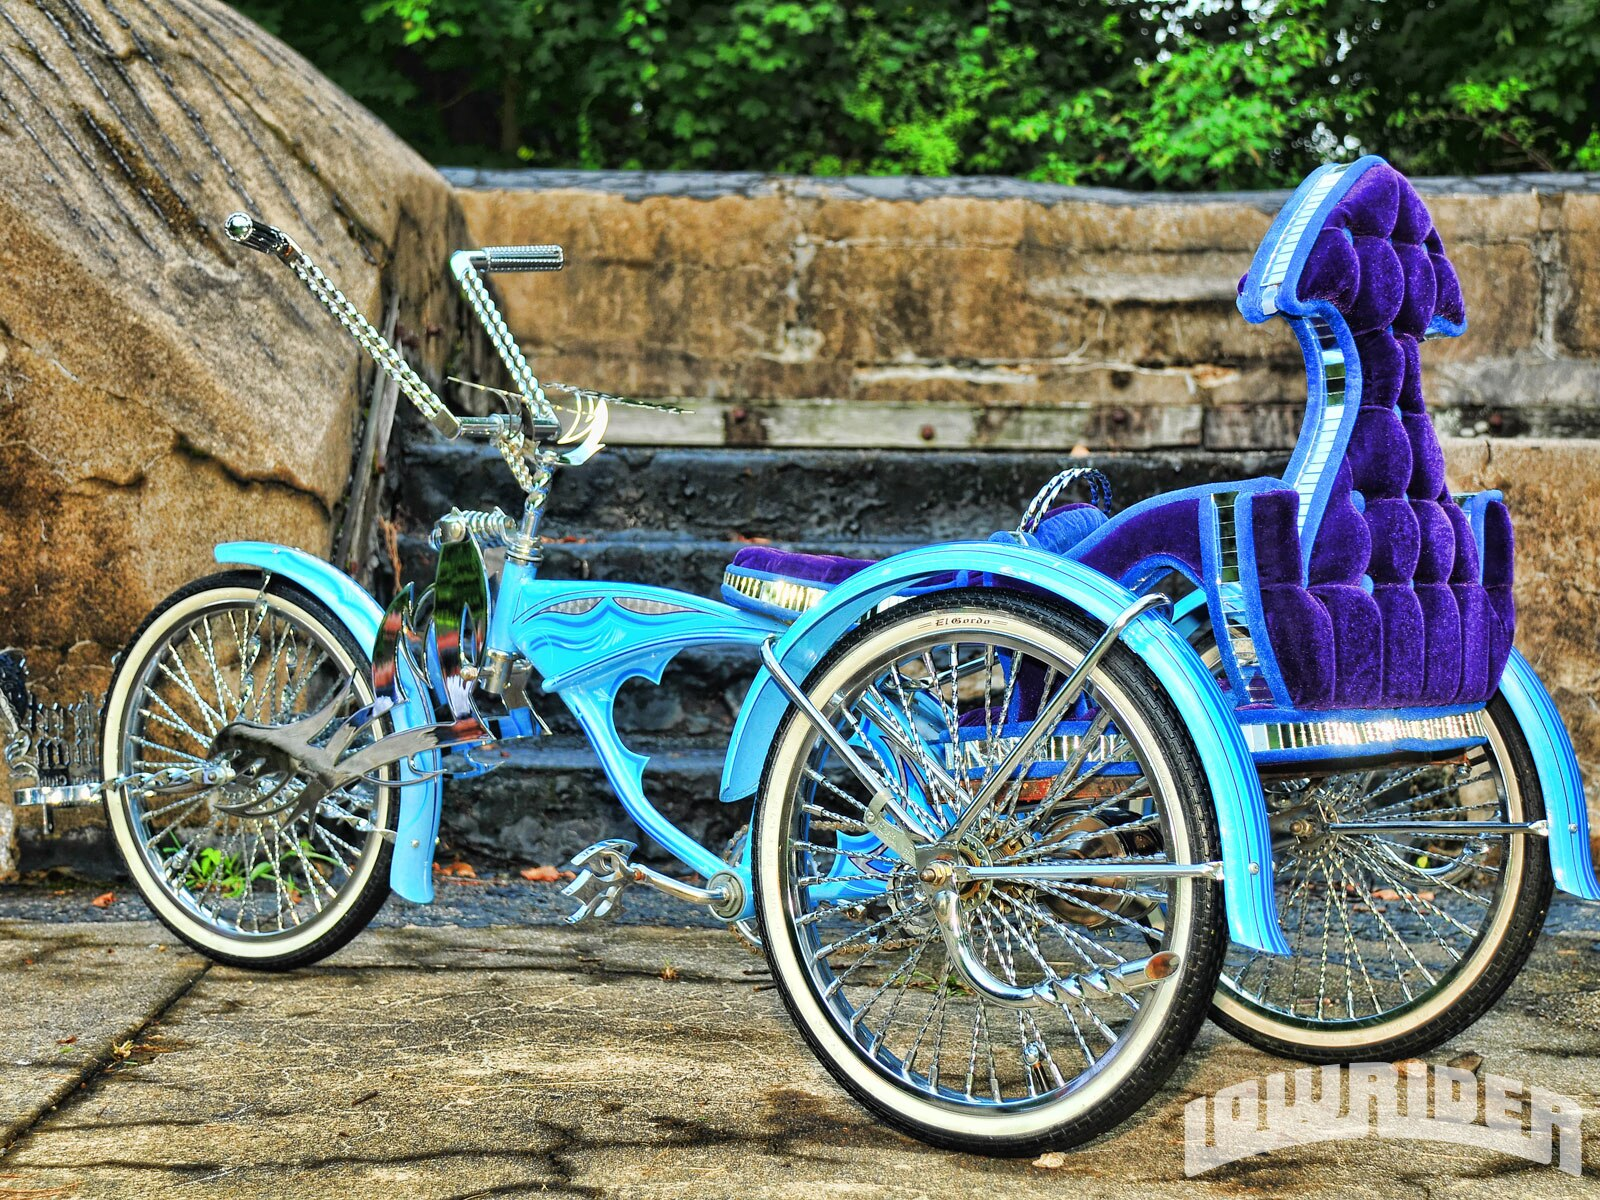 1301-lrmp-01-ps-nino-malo-lowrider-bicycle